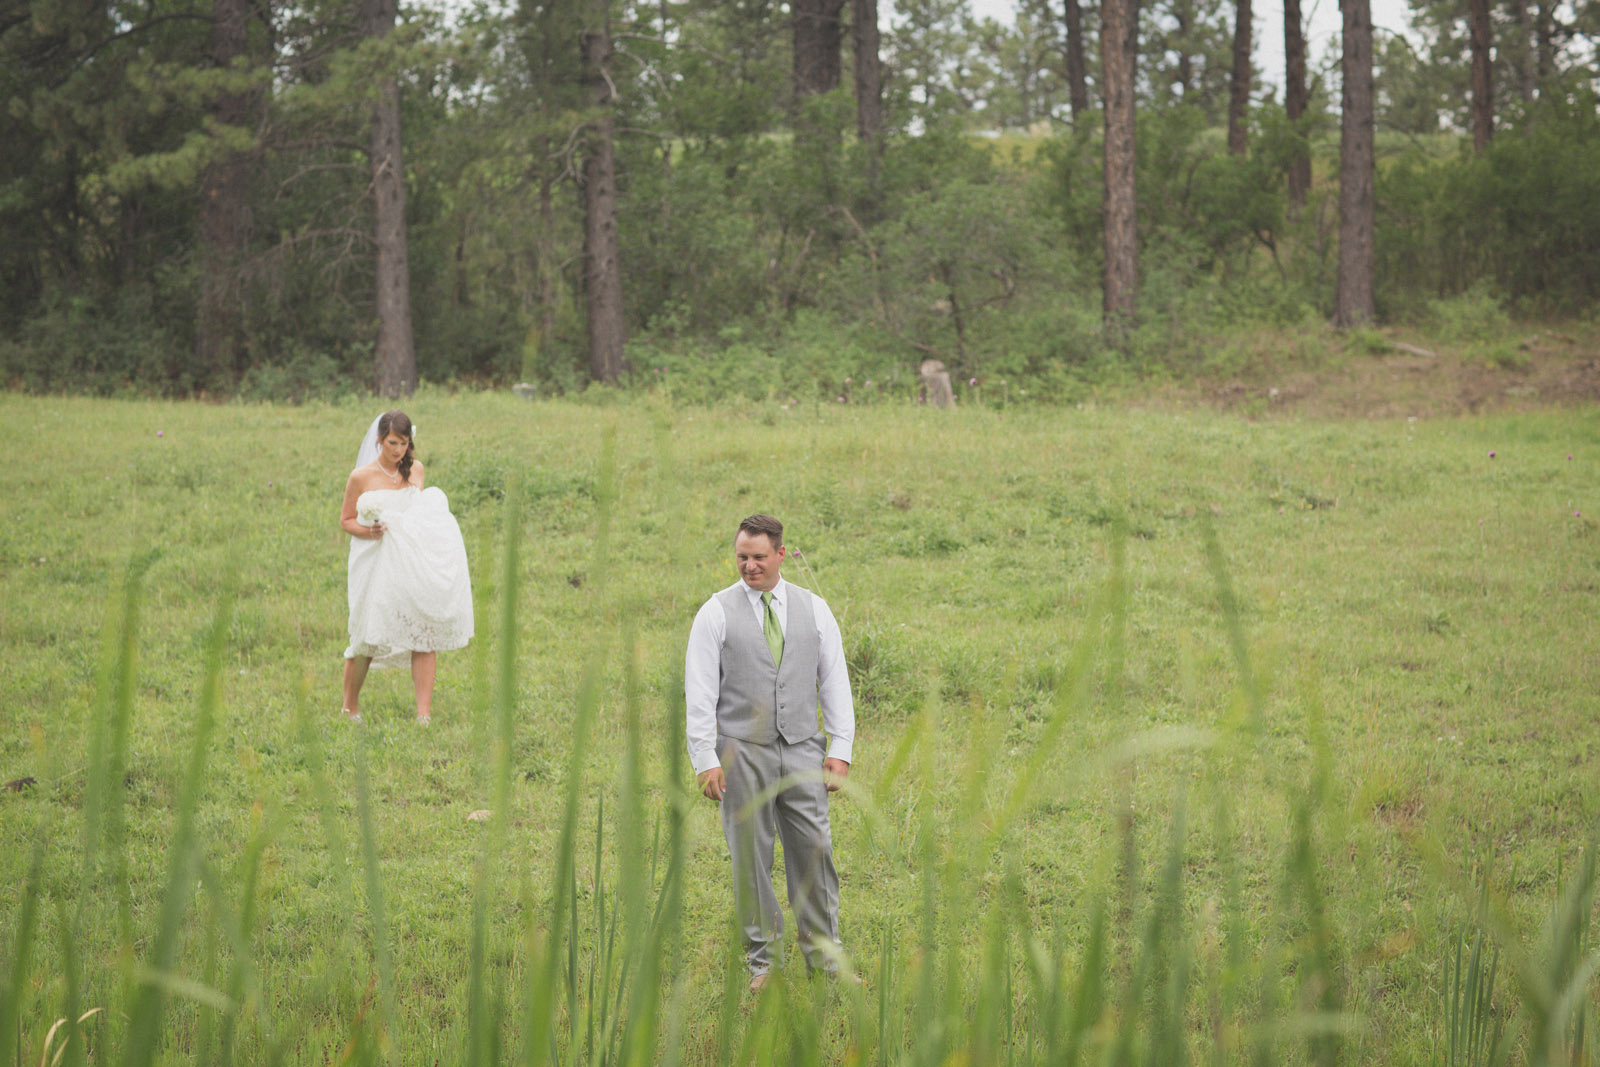 061-groom-bride-wedding-cabin-woods-forest-pictures-photos-dress-photography-portraits-first-look-firstlook-reveal-happy-farmington-aztec-durango-mancos-co-nm